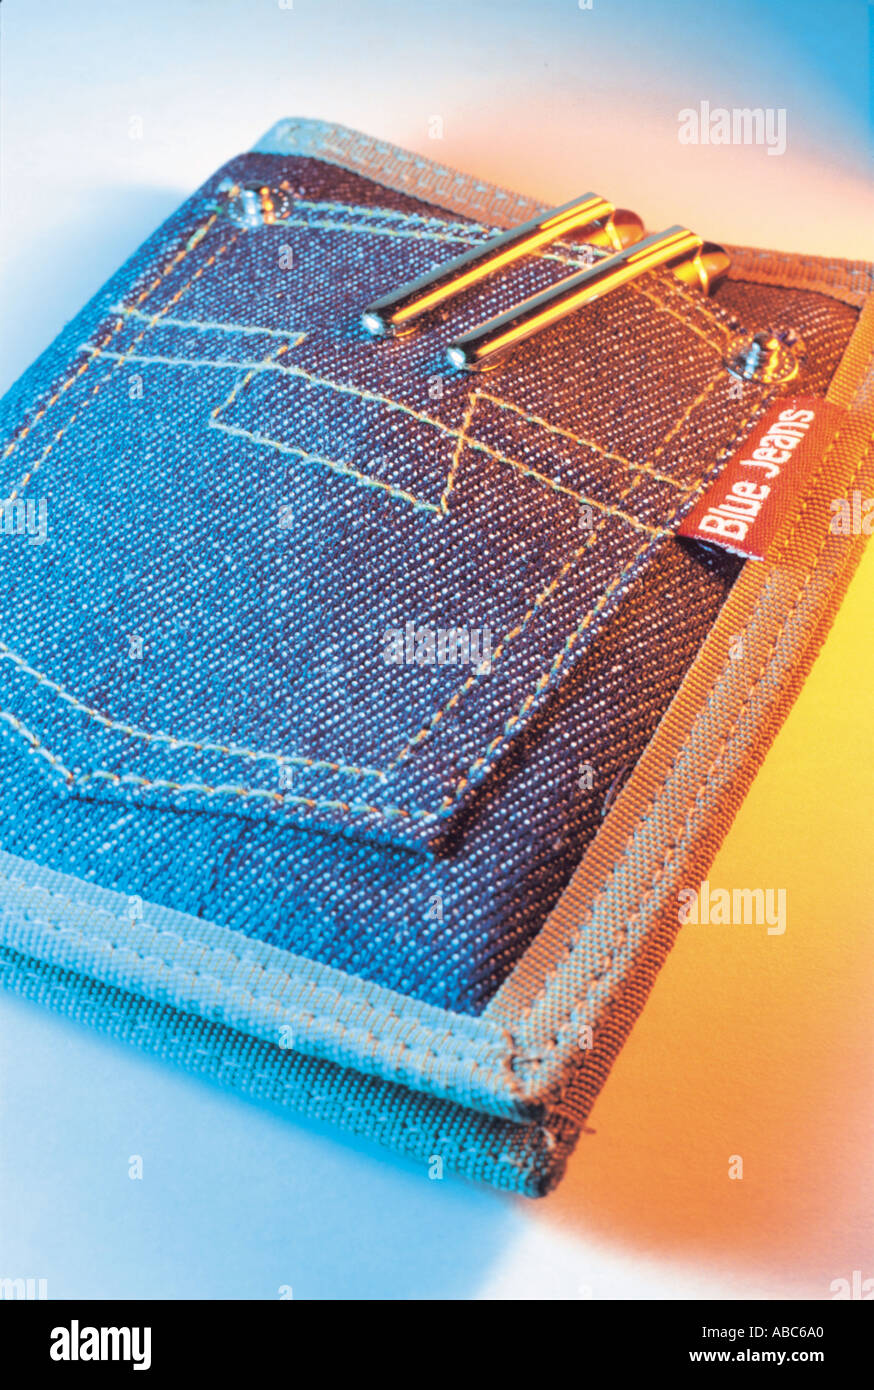 Denim Wallet - Stock Image